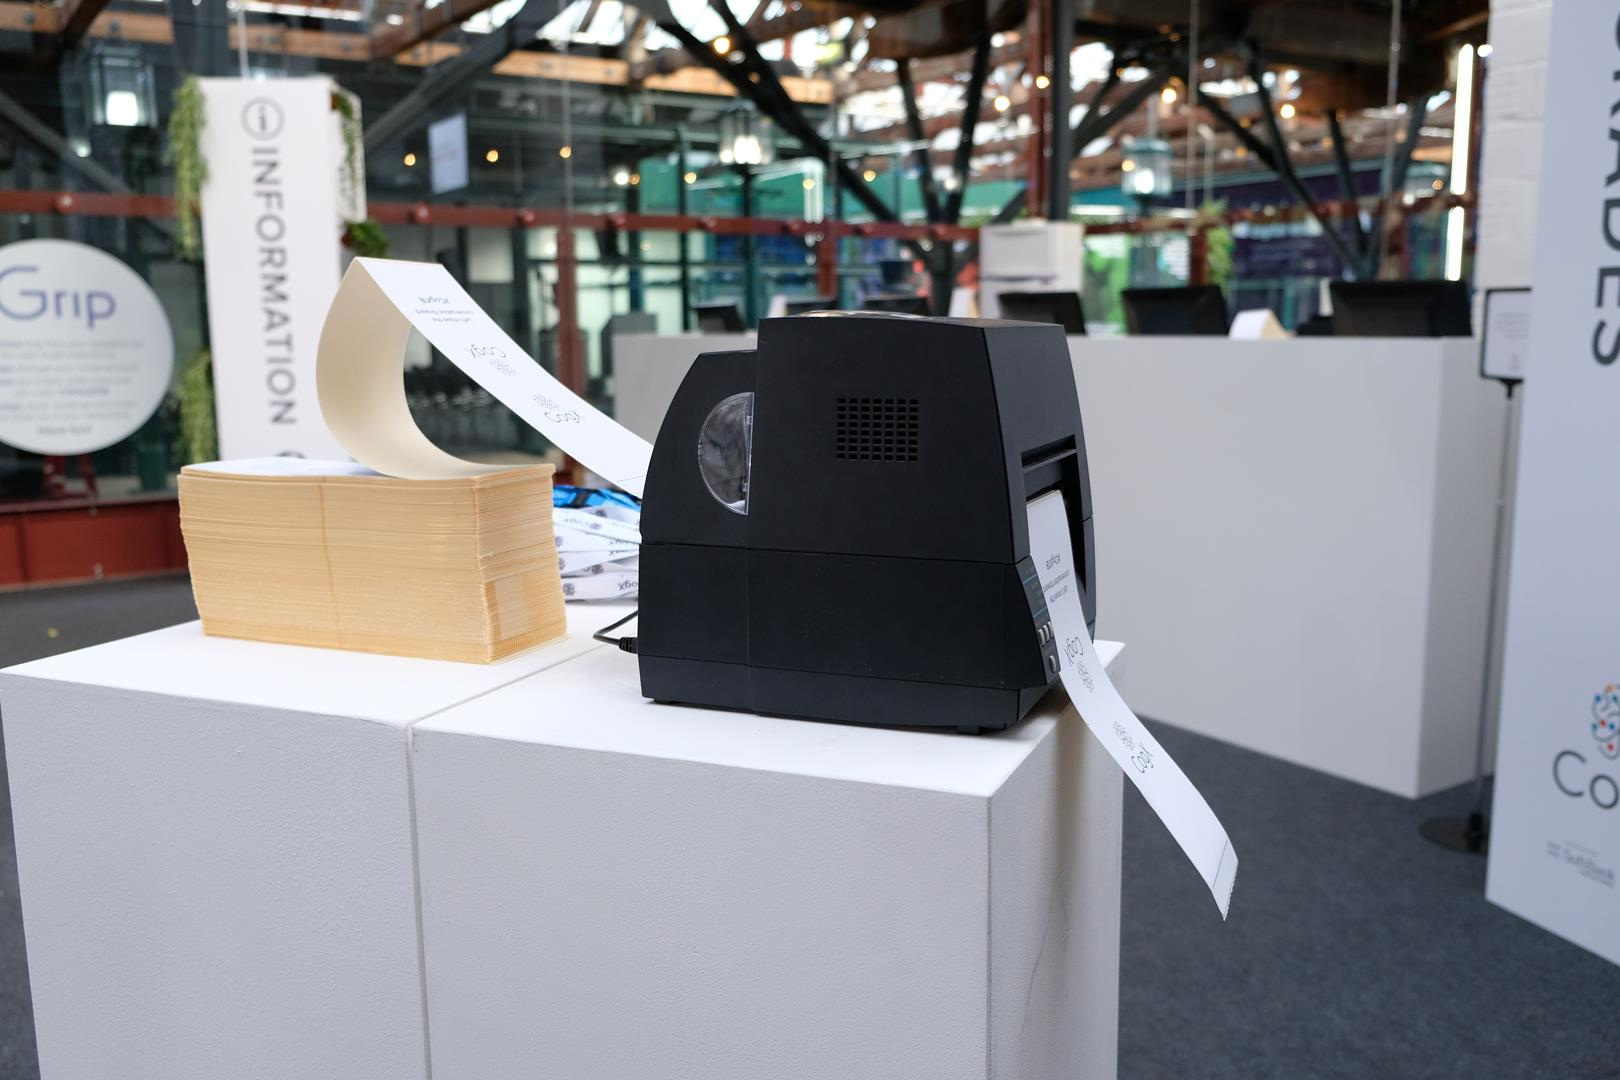 event-connections-expo-badge-printer.JPG